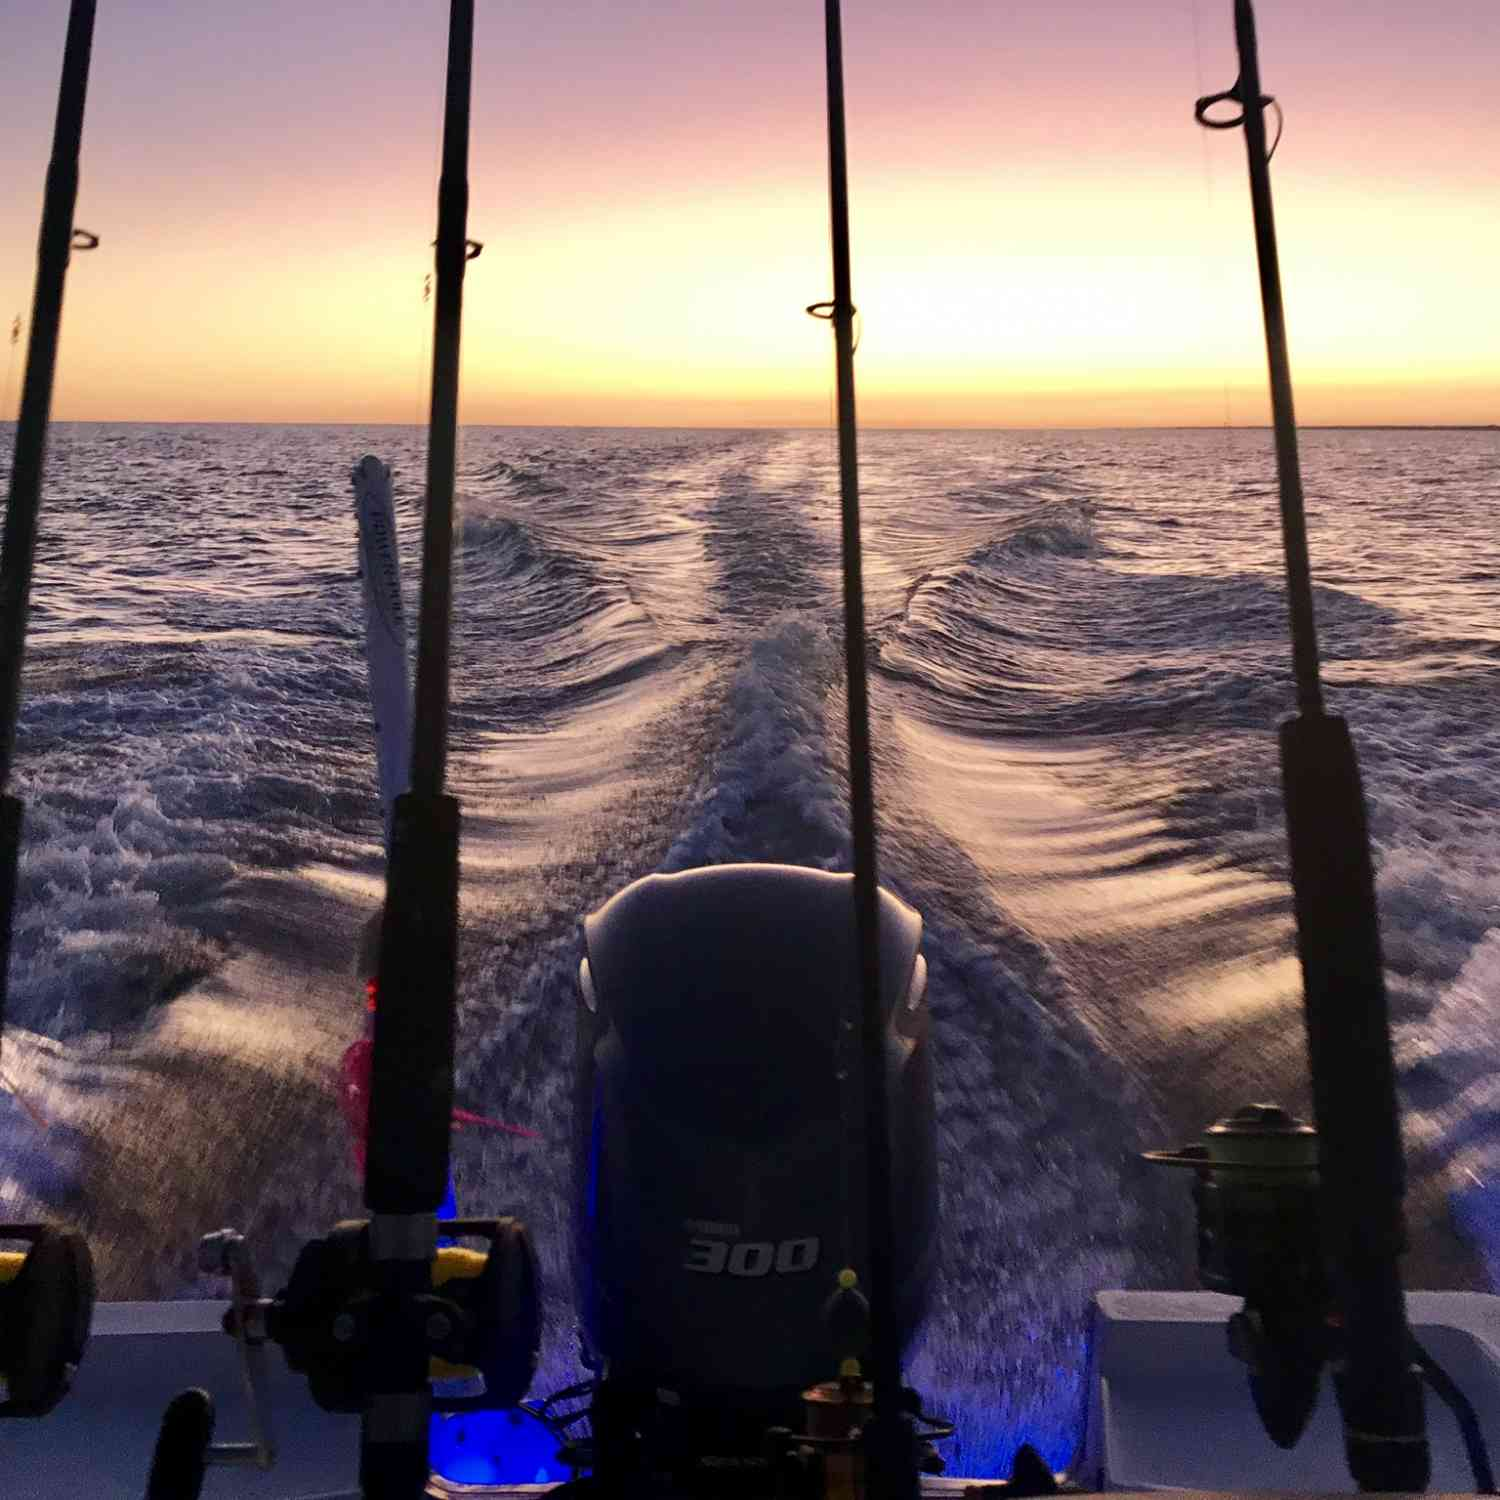 Title: Evening Bite - On board their Sportsman Masters 247 Bay Boat - Location: NC. Participating in the Photo Contest #SportsmanNovember2019